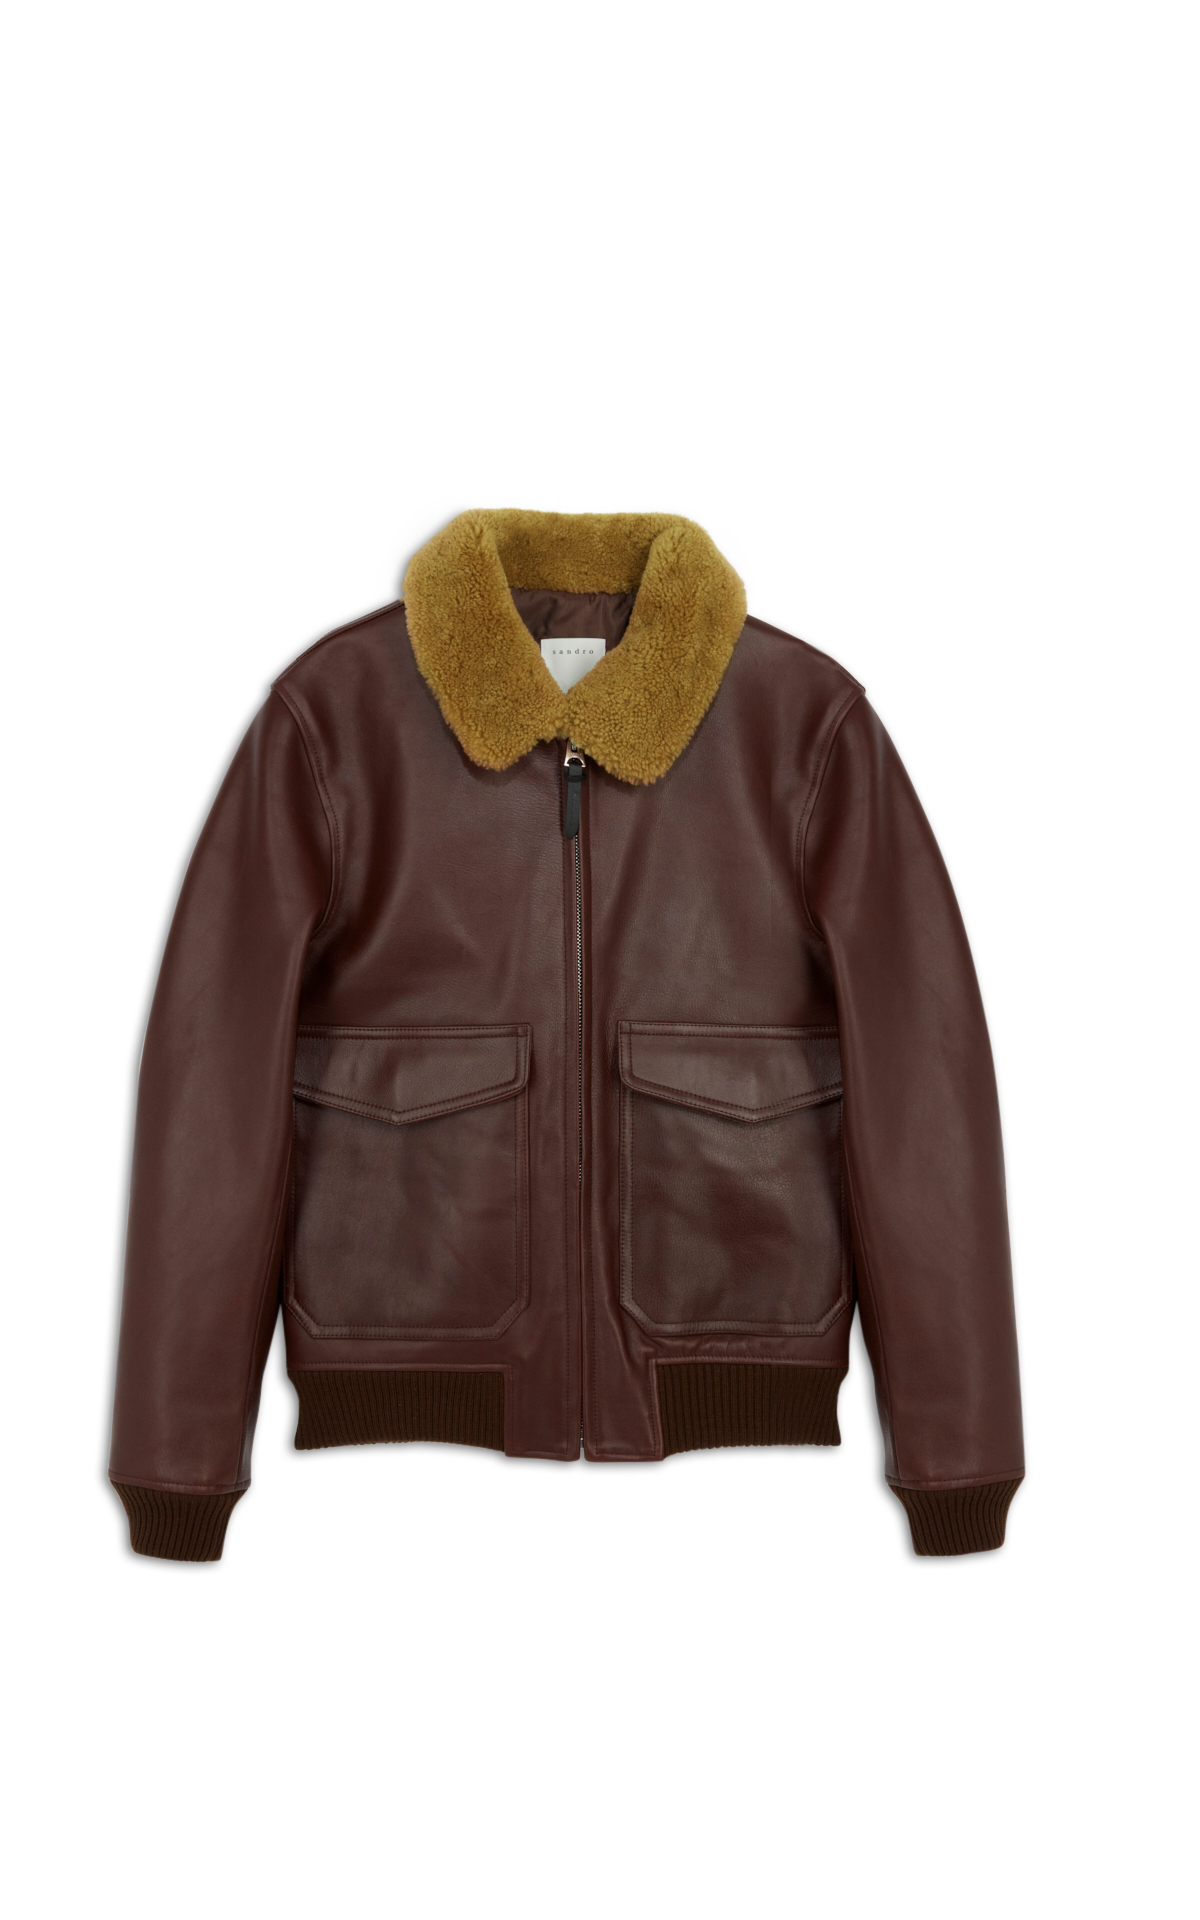 Sandro burgundy leather jacket with collar la vallée village